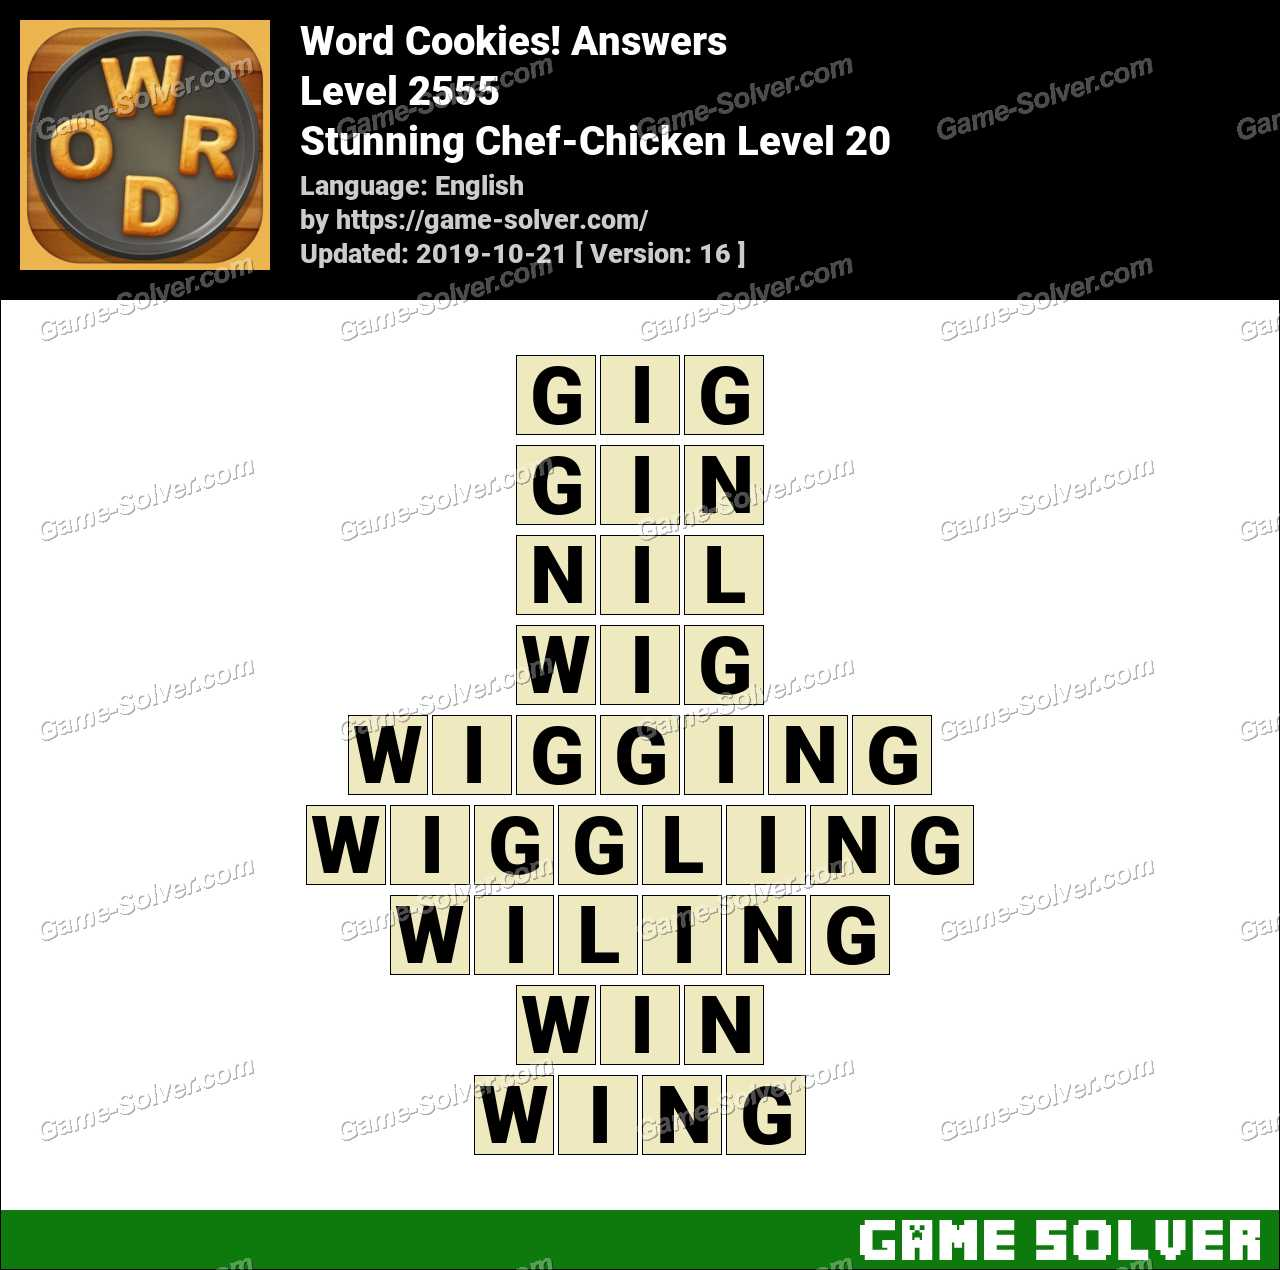 Word Cookies Stunning Chef-Chicken Level 20 Answers